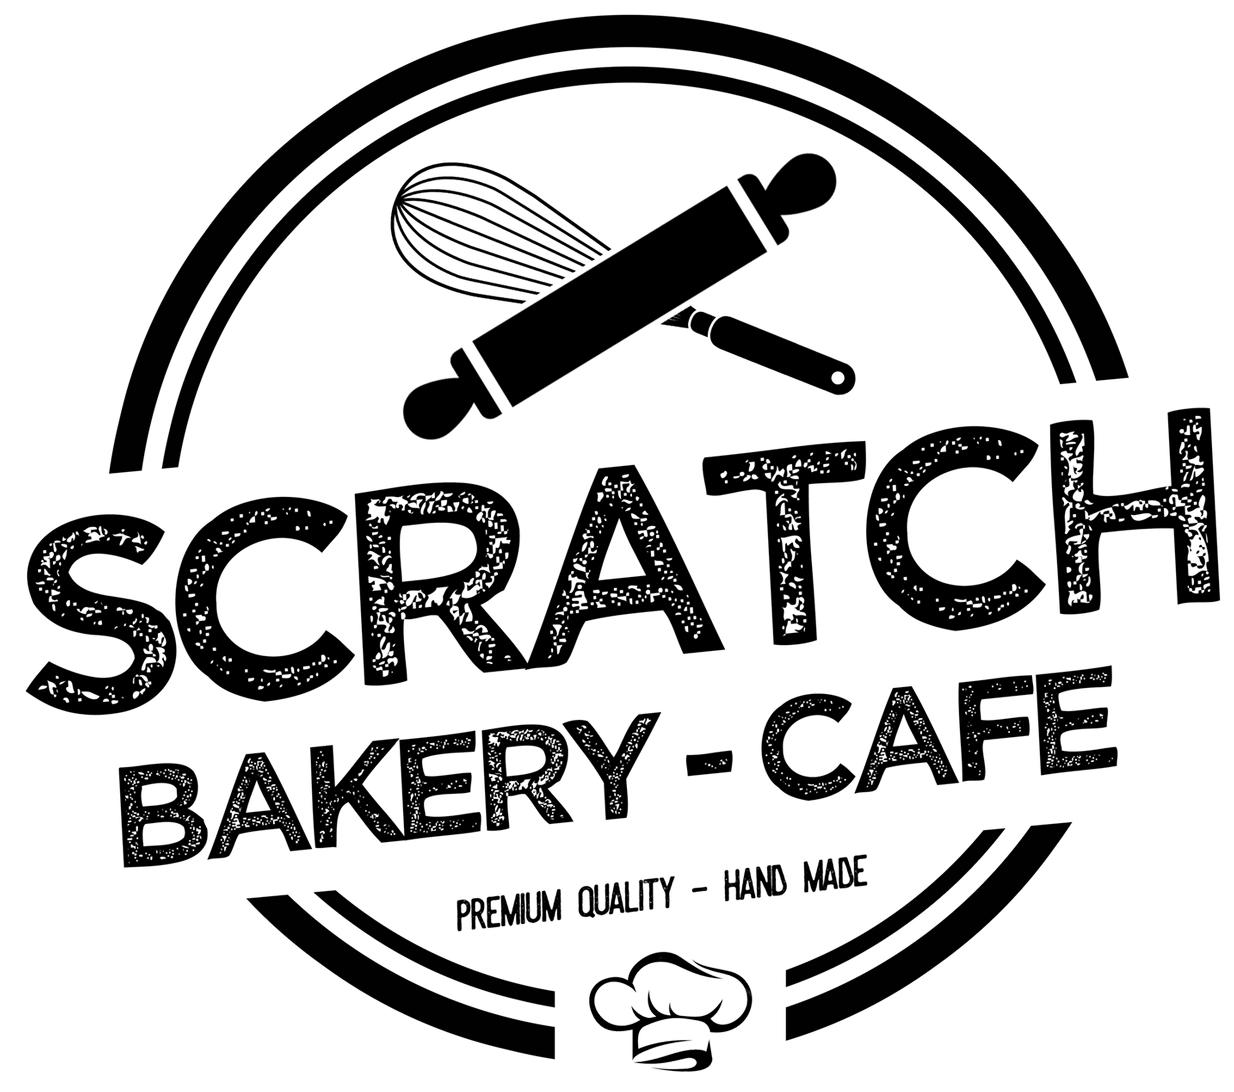 Scratch Bakery Cafe